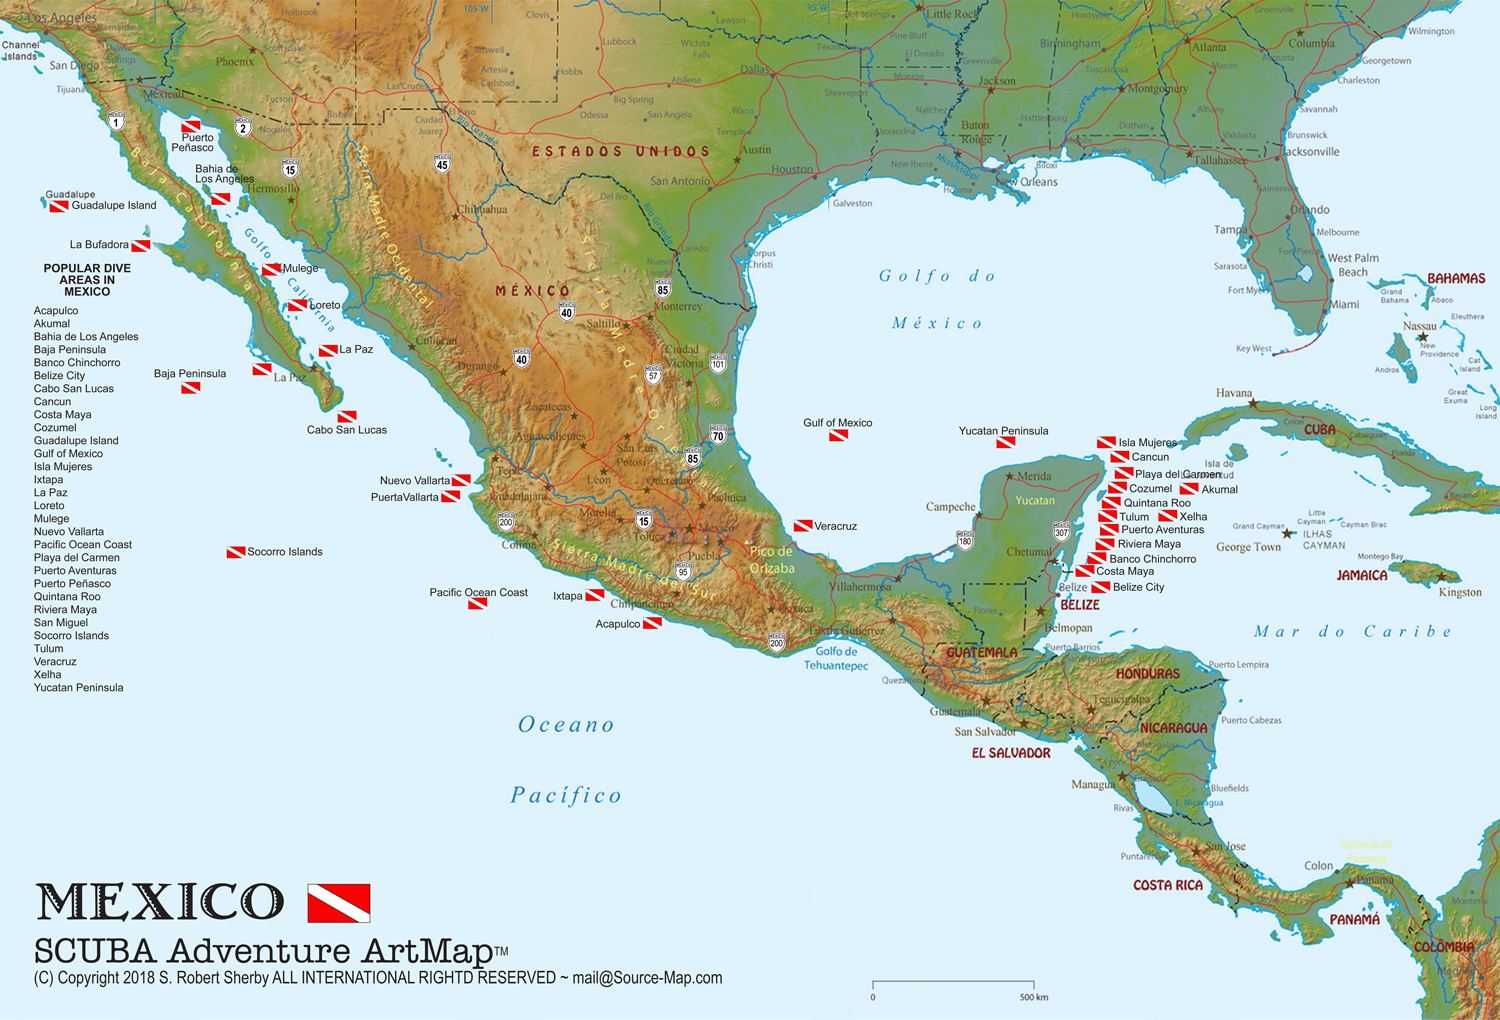 Mexico SCUBA Adventure Map